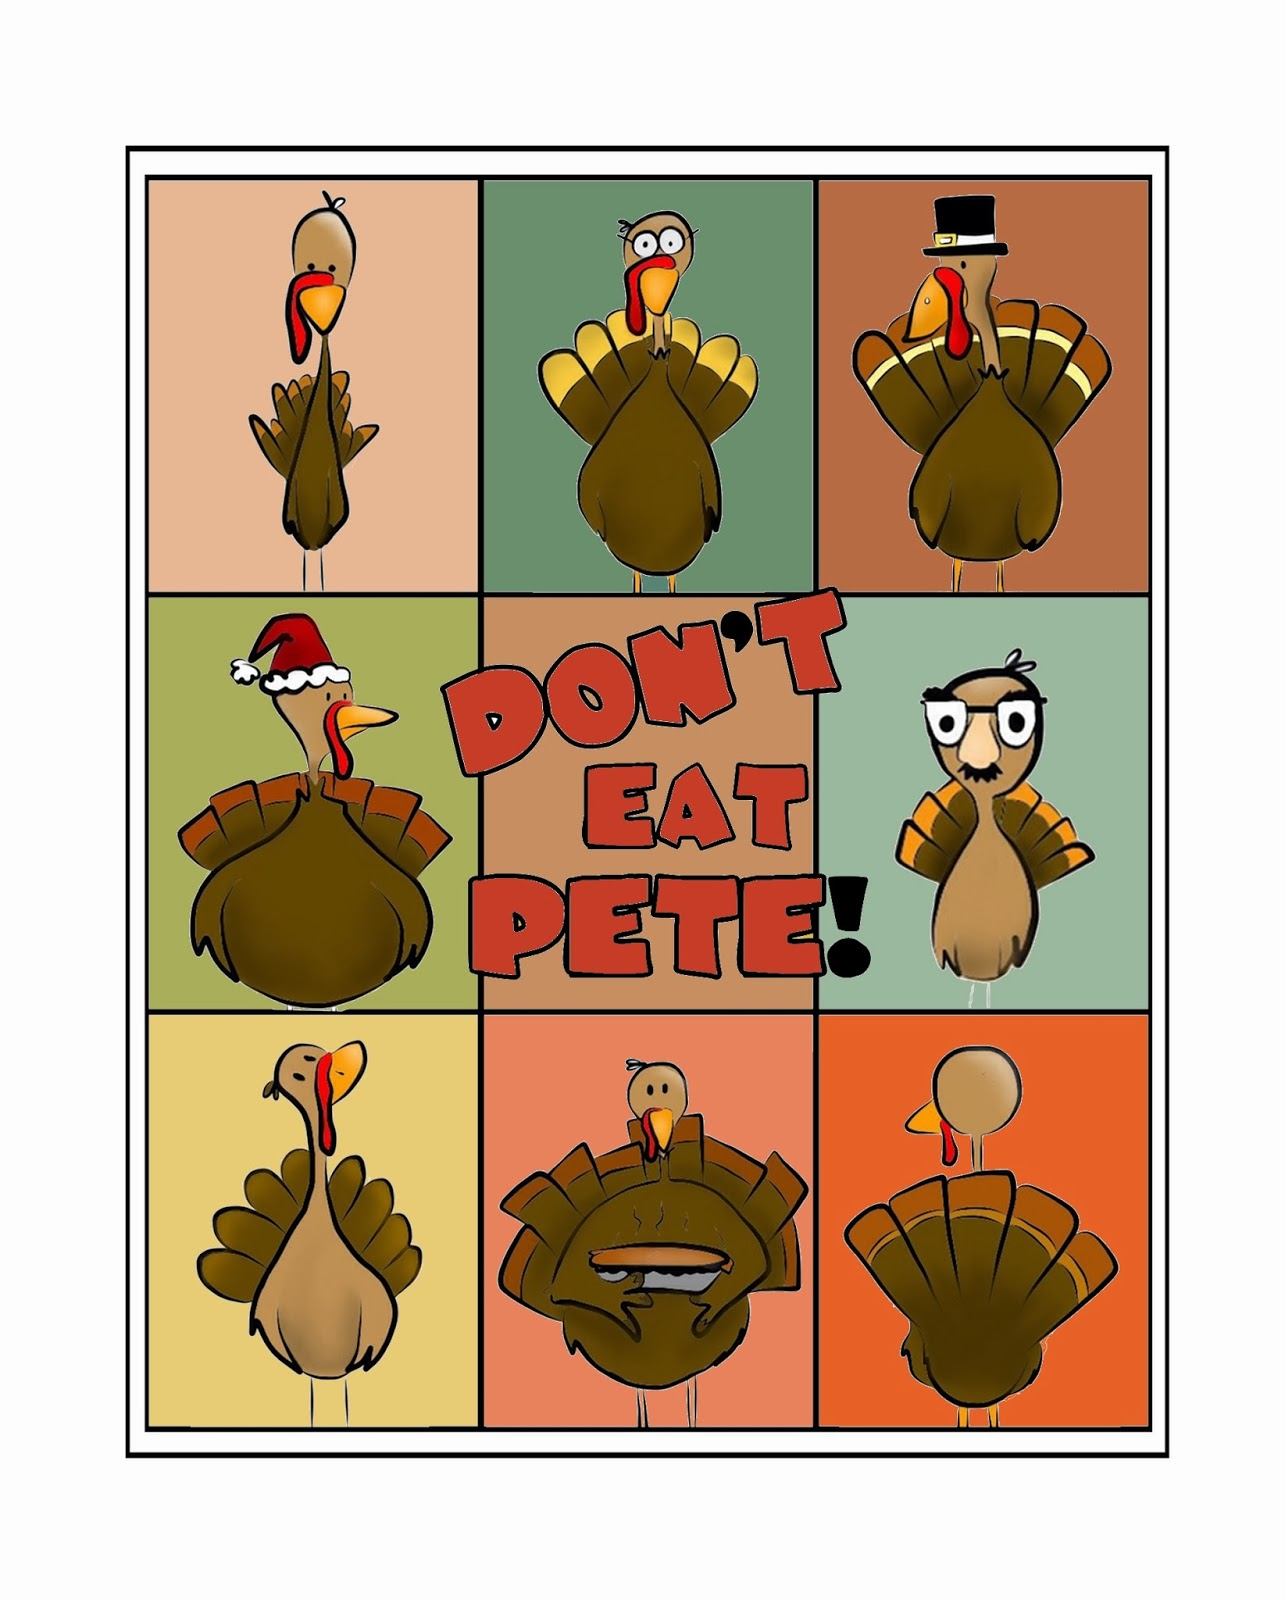 photograph about Don T Eat Pete Printable referred to as Dont Take in Pete!